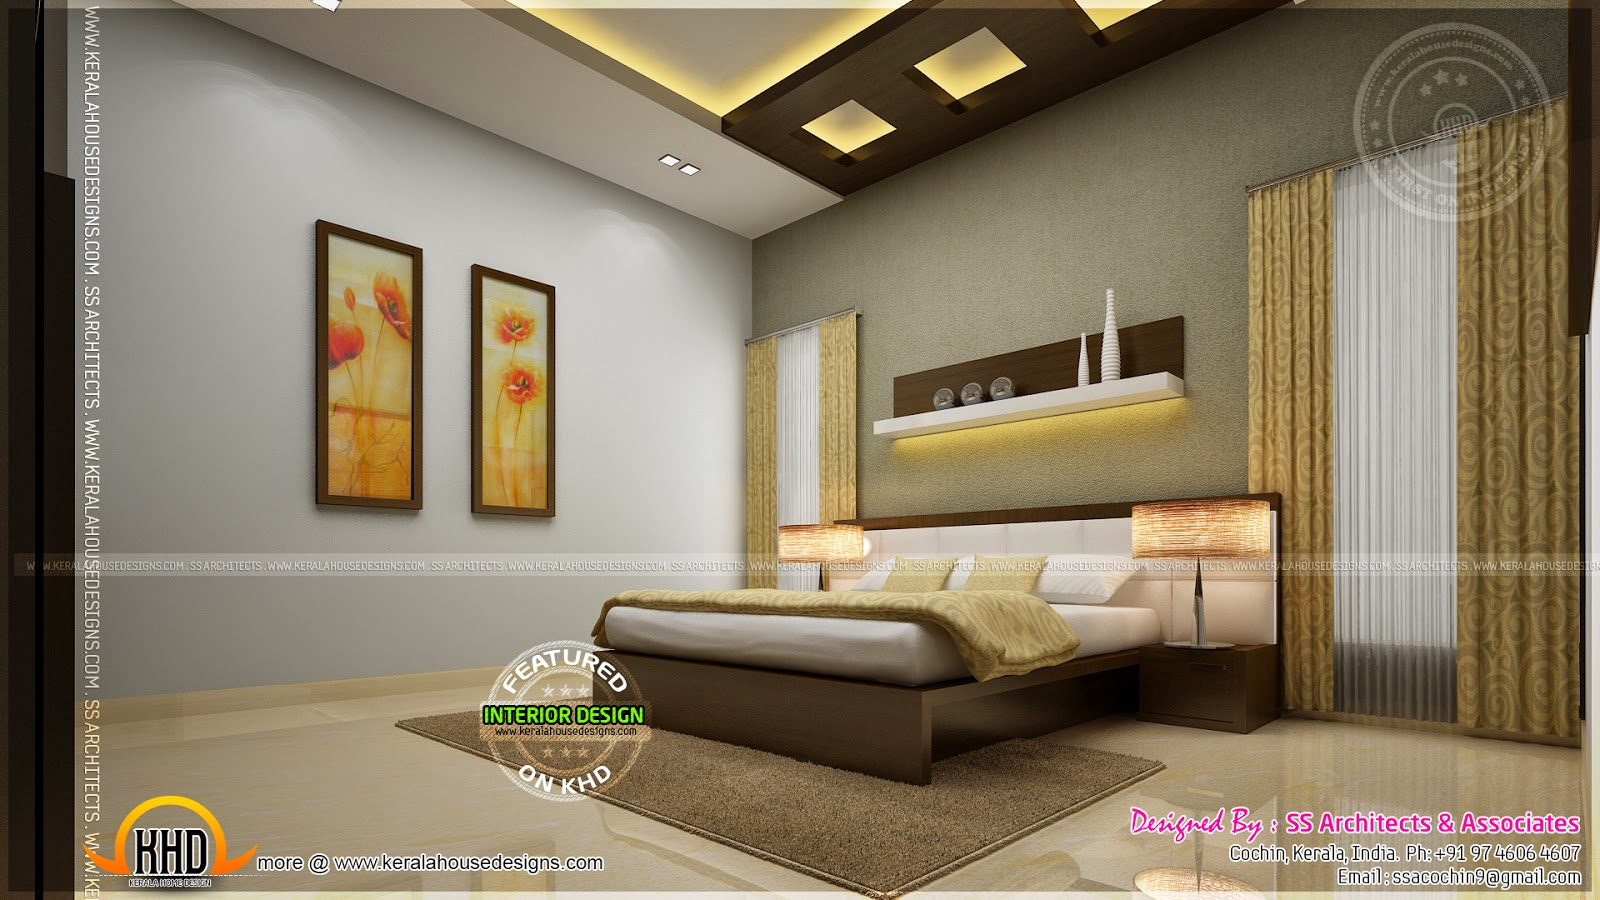 Awesome master bedroom interior - Kerala home design and ...